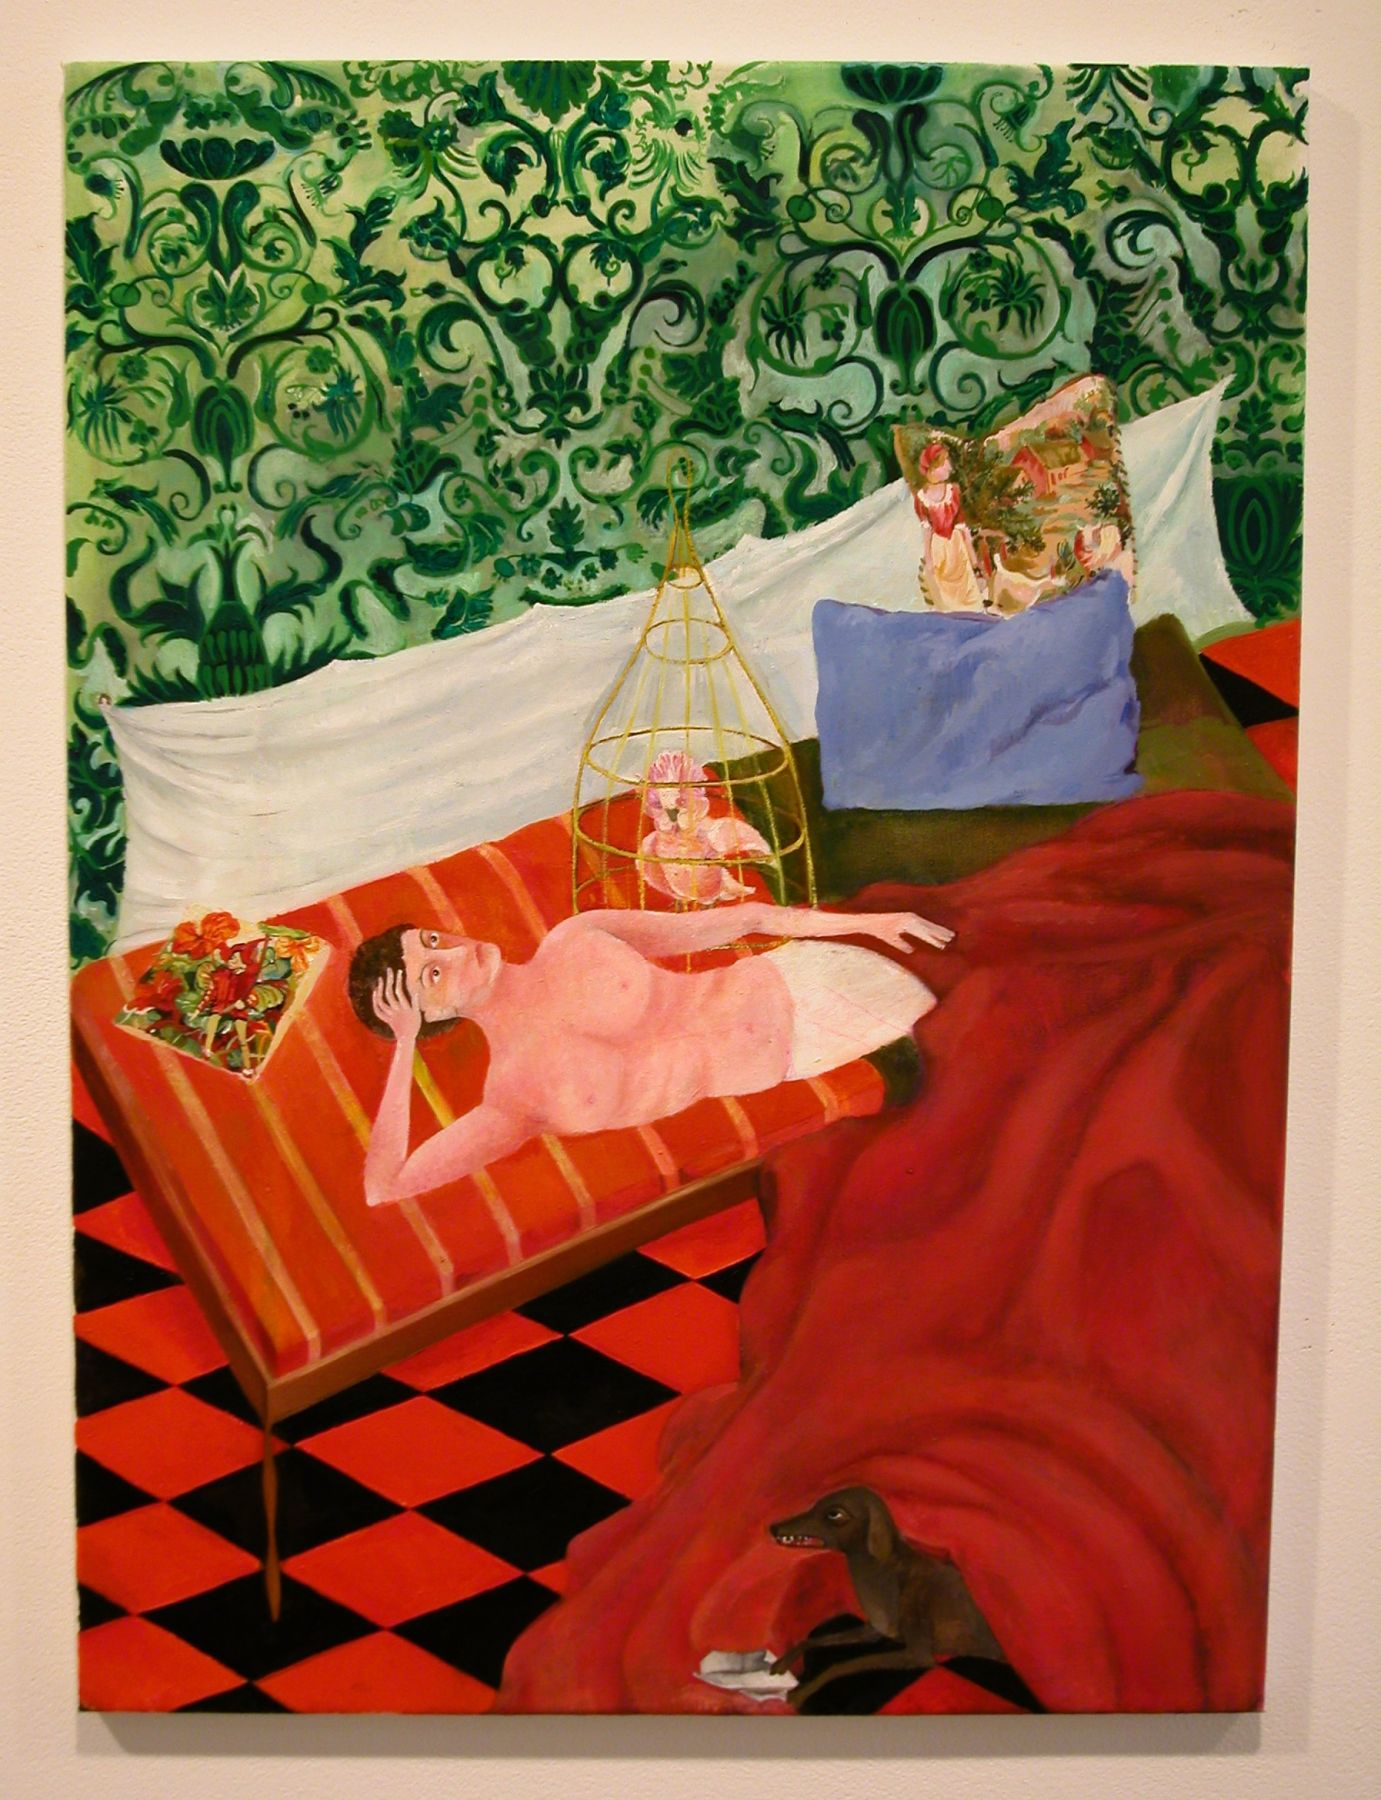 Katharina Wulff, Charlie und Du, 2002, oil on canvas, 75 x 56 cm